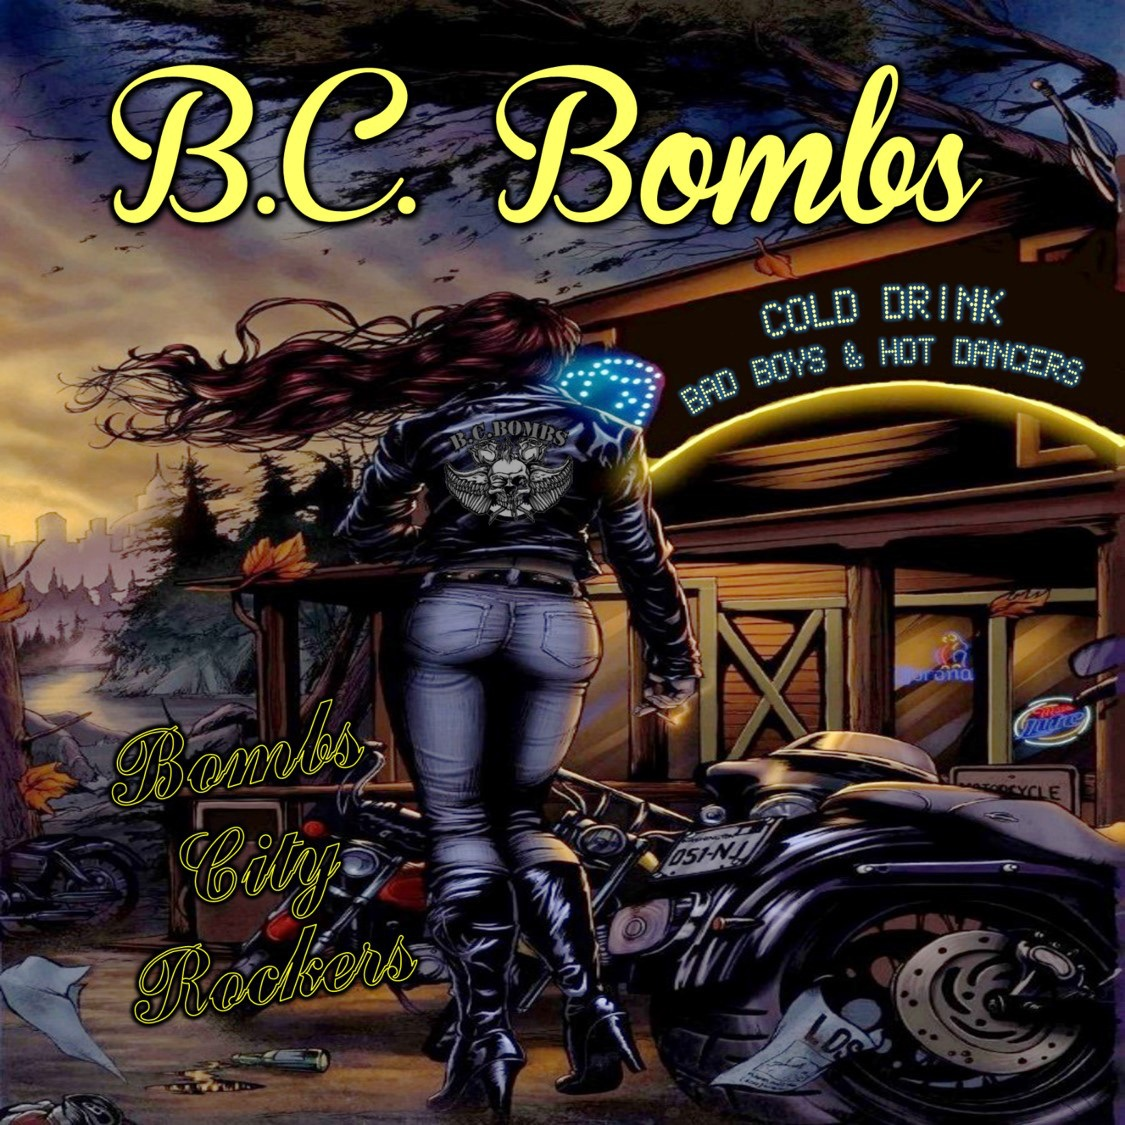 B.C. Bombs - Bombs City Rockers - LP - 2014